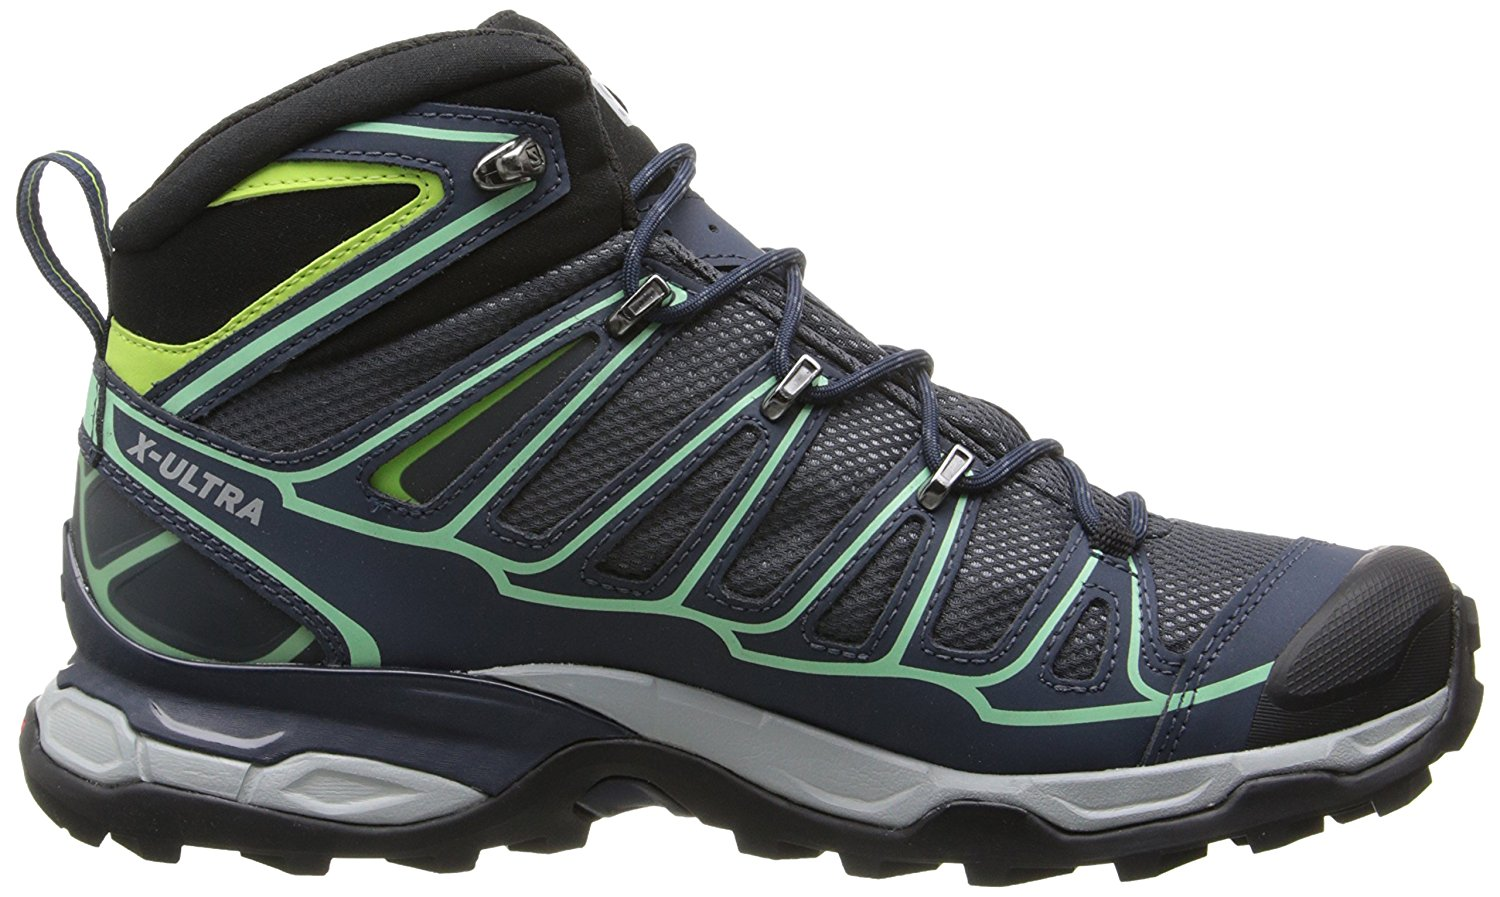 Salomon X Ultra Mid 2 GTX side